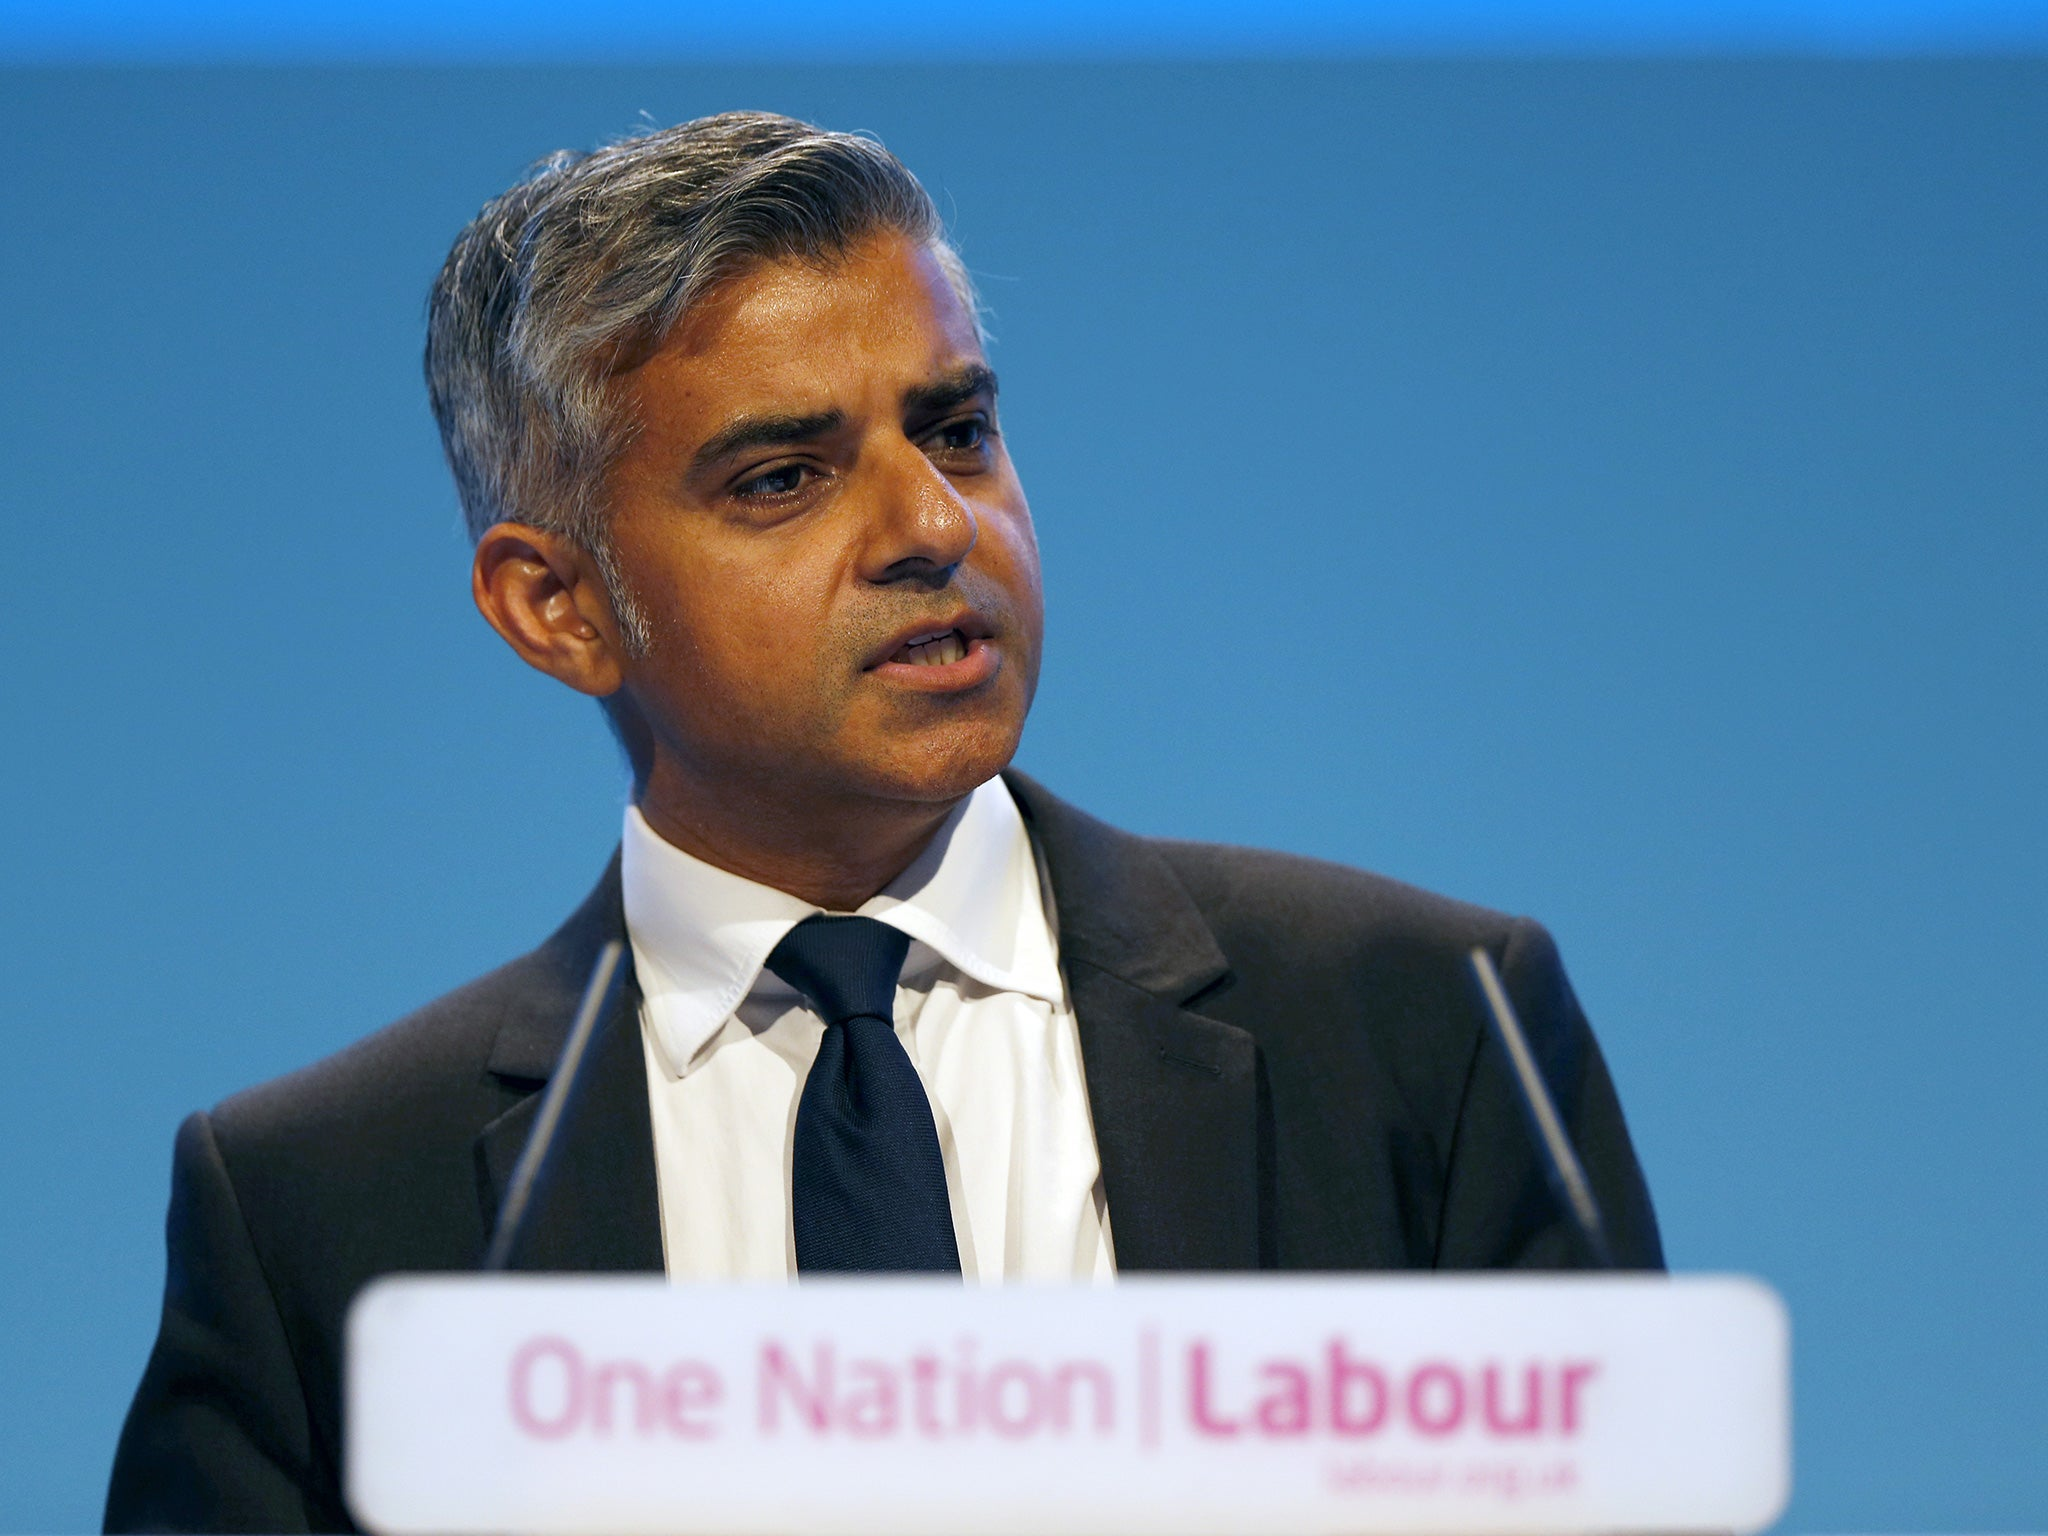 EU citizens set to face Brexit 'discrimination' from landlords and employers, Sadiq Khan warns